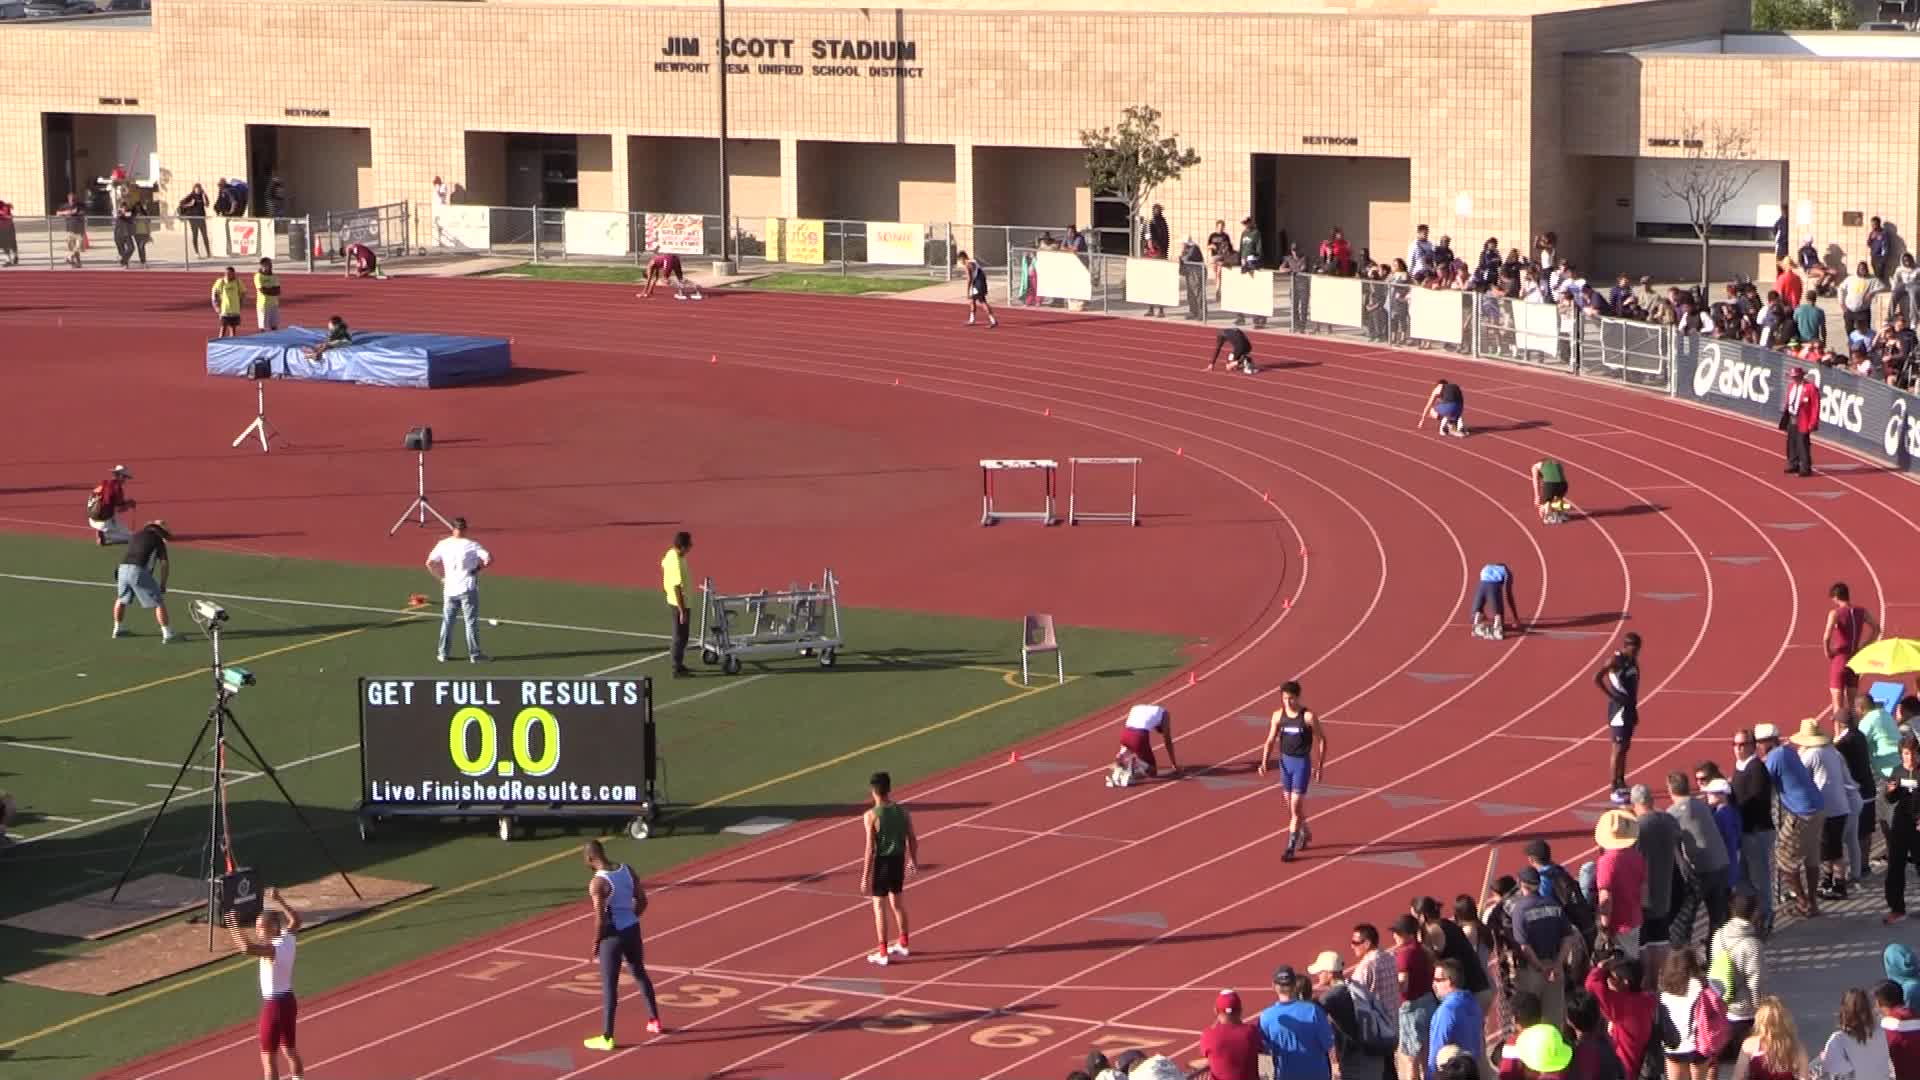 Image:  Catalina Foothills High School track with athletes performing events